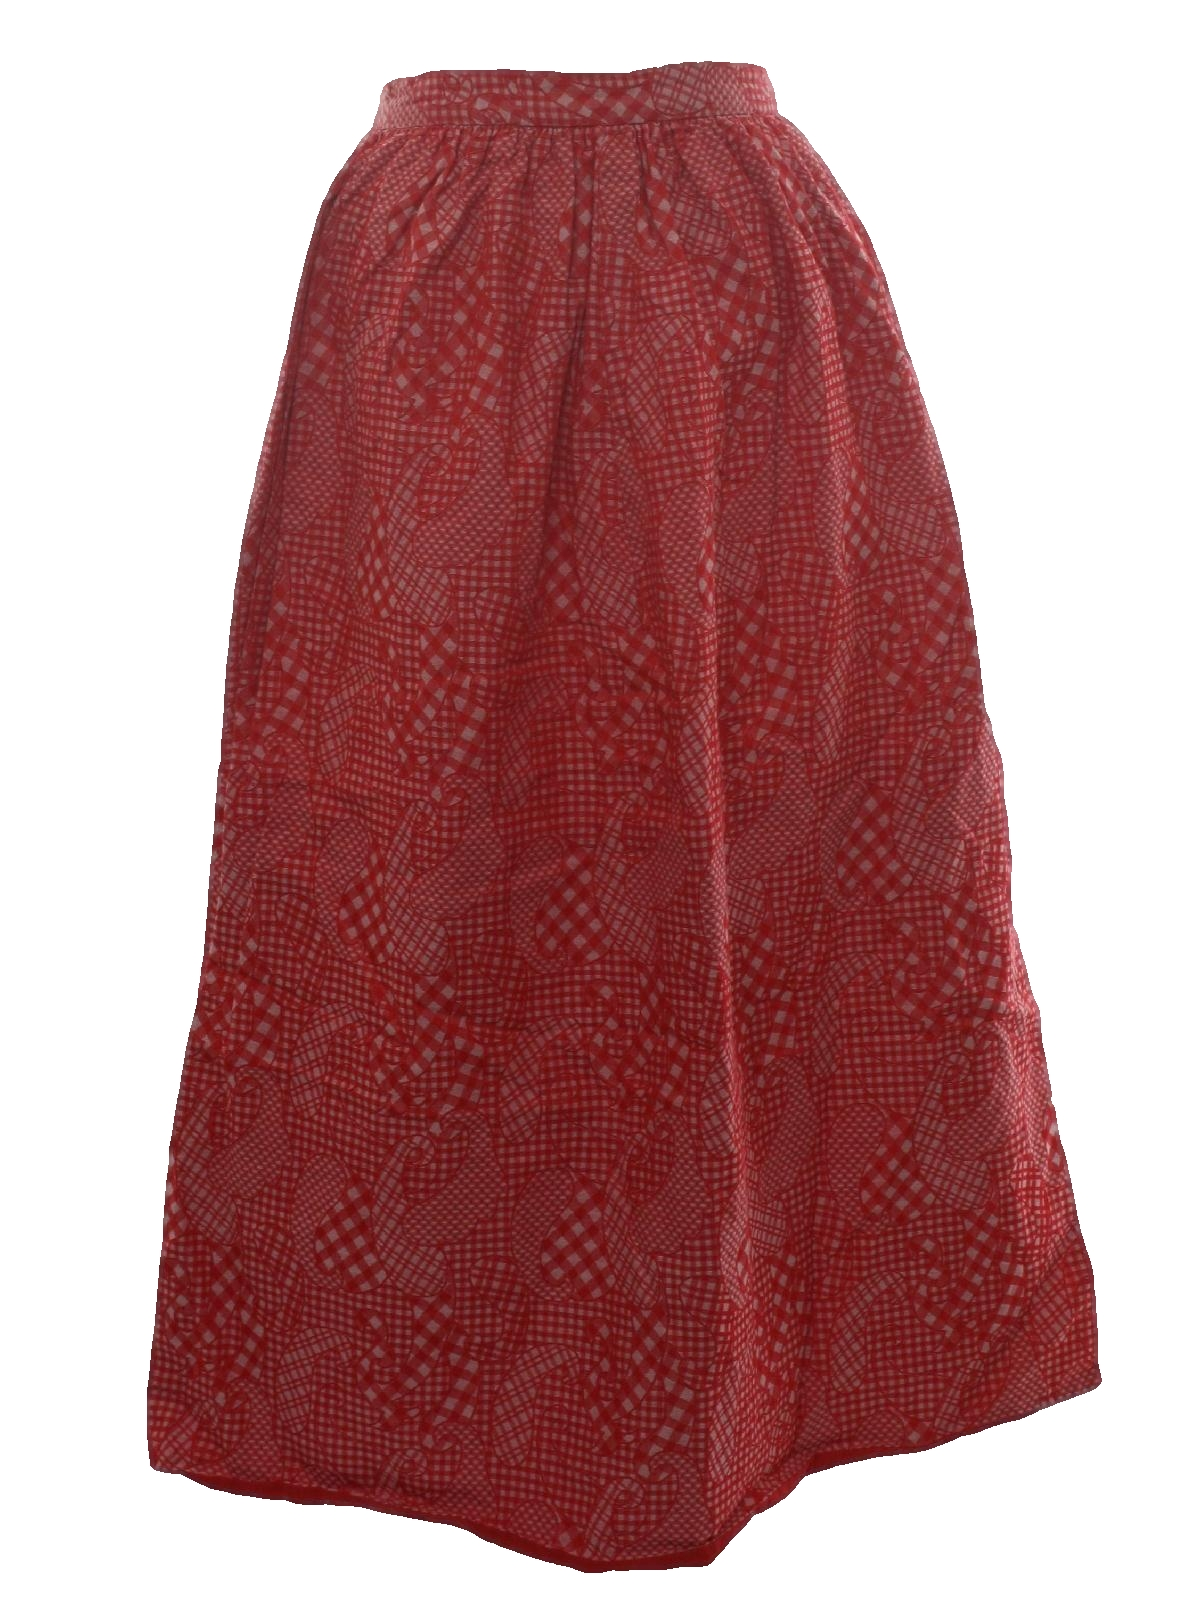 c0715f1e 70s Vintage Home Sewn Hippie Skirt: 70s -Home Sewn- Womens red and ...